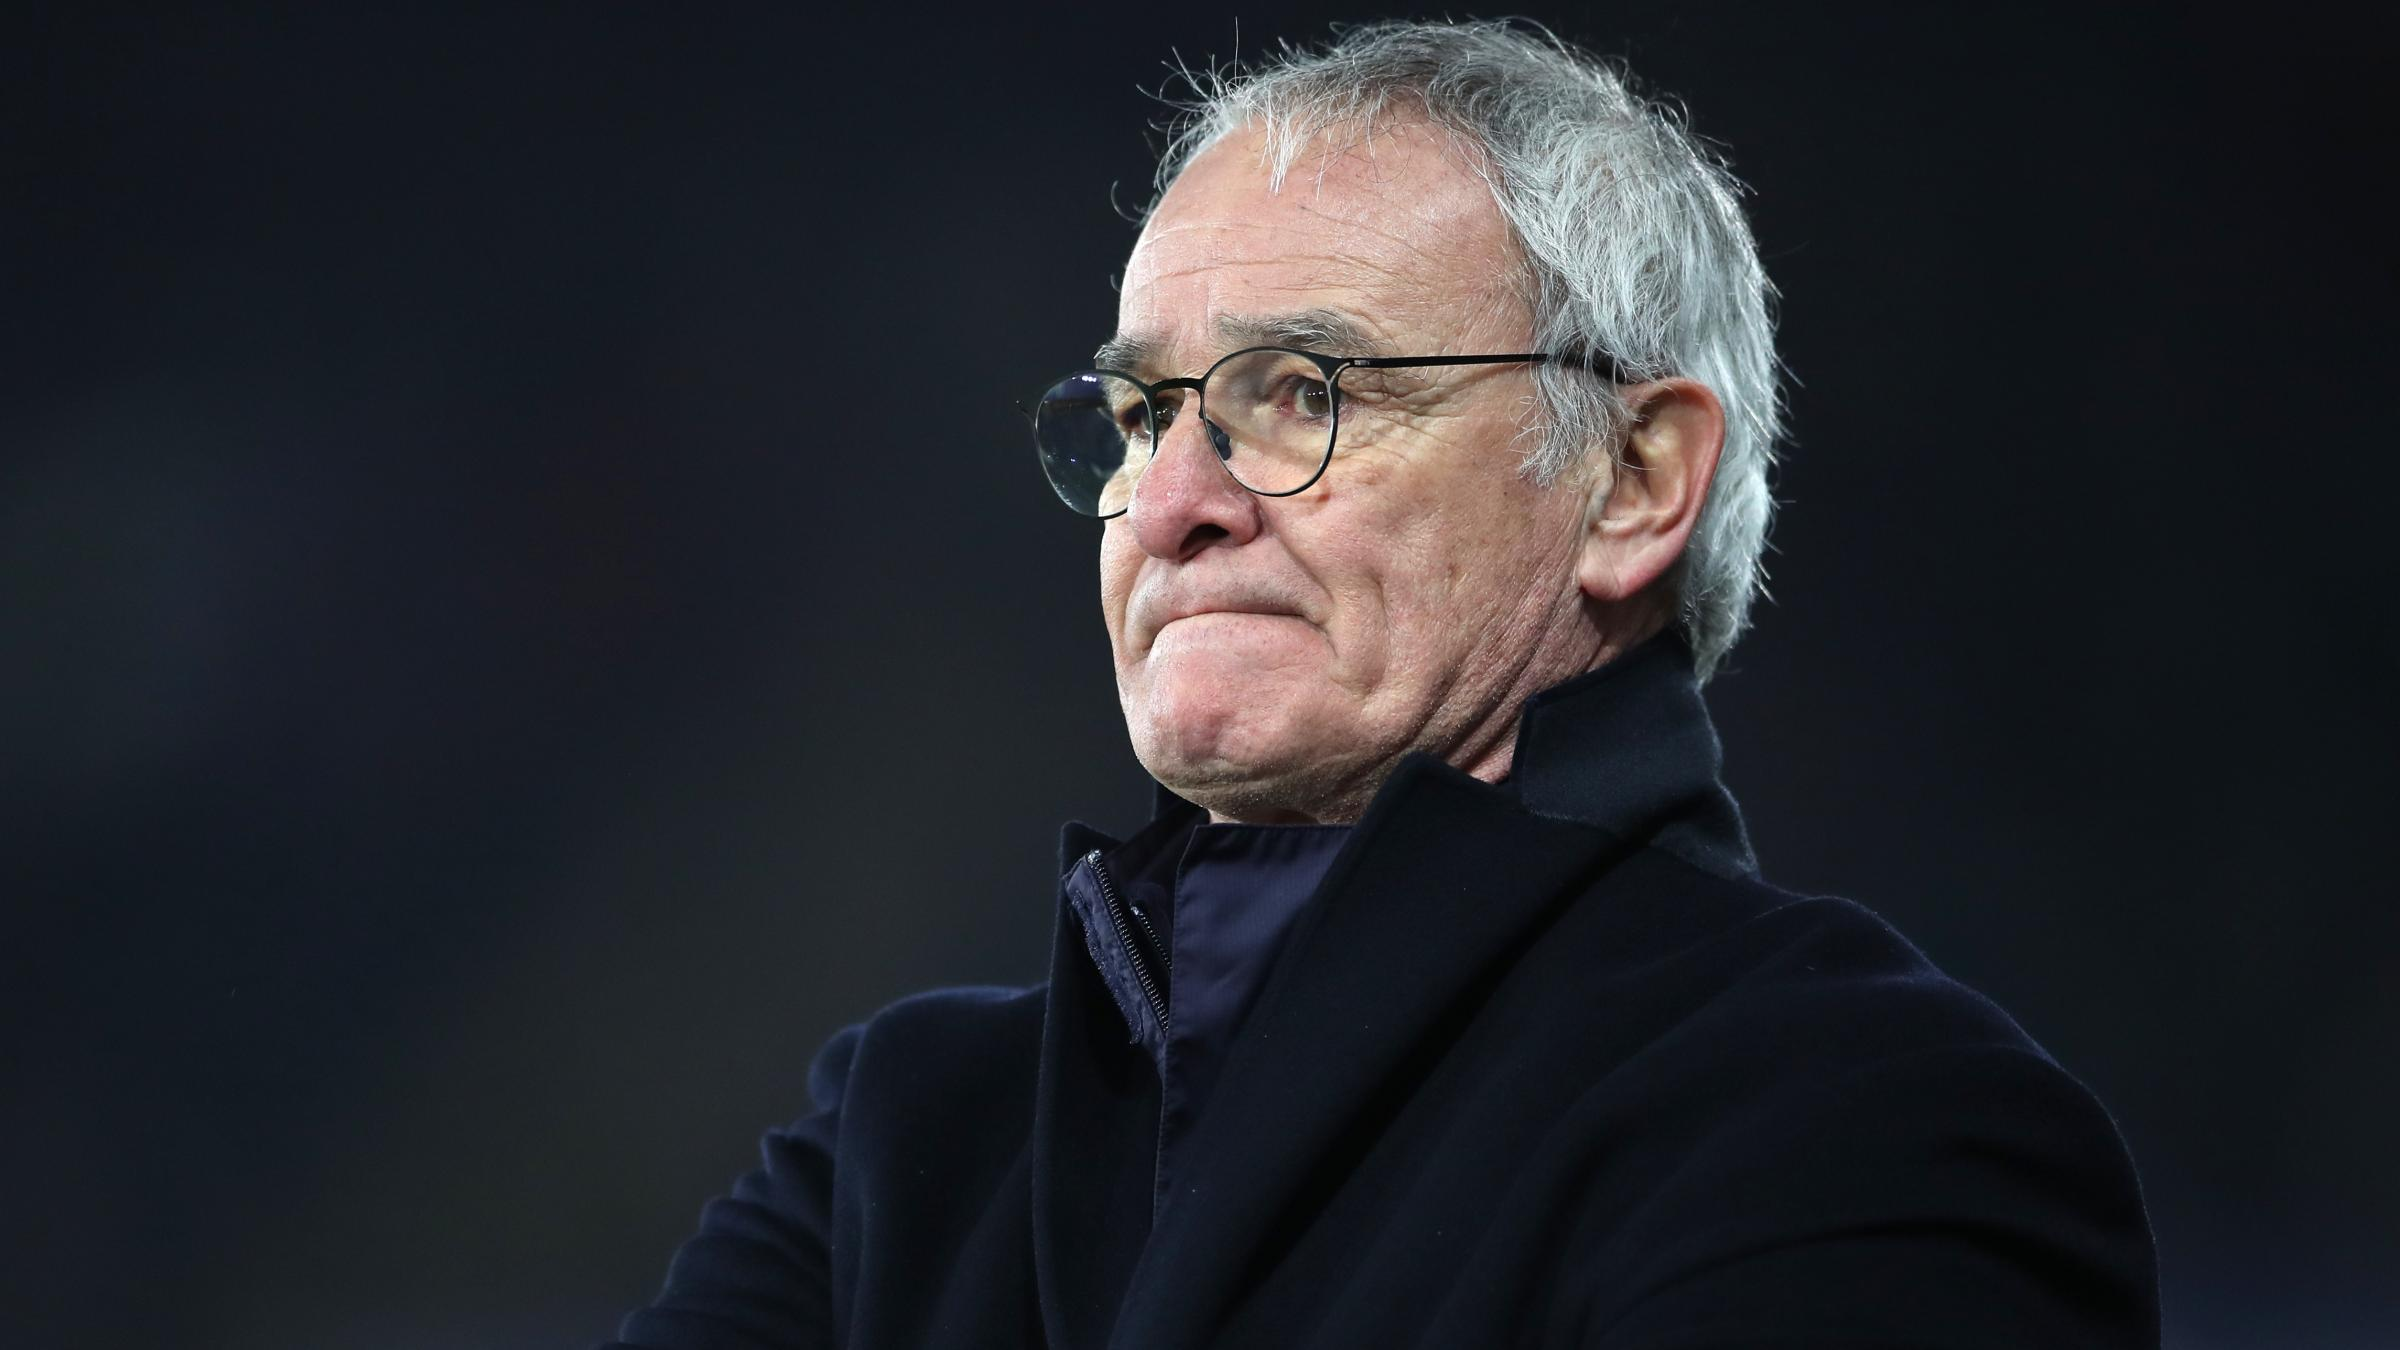 The French football rule that delayed Claudio Ranieri's Ligue 1 return